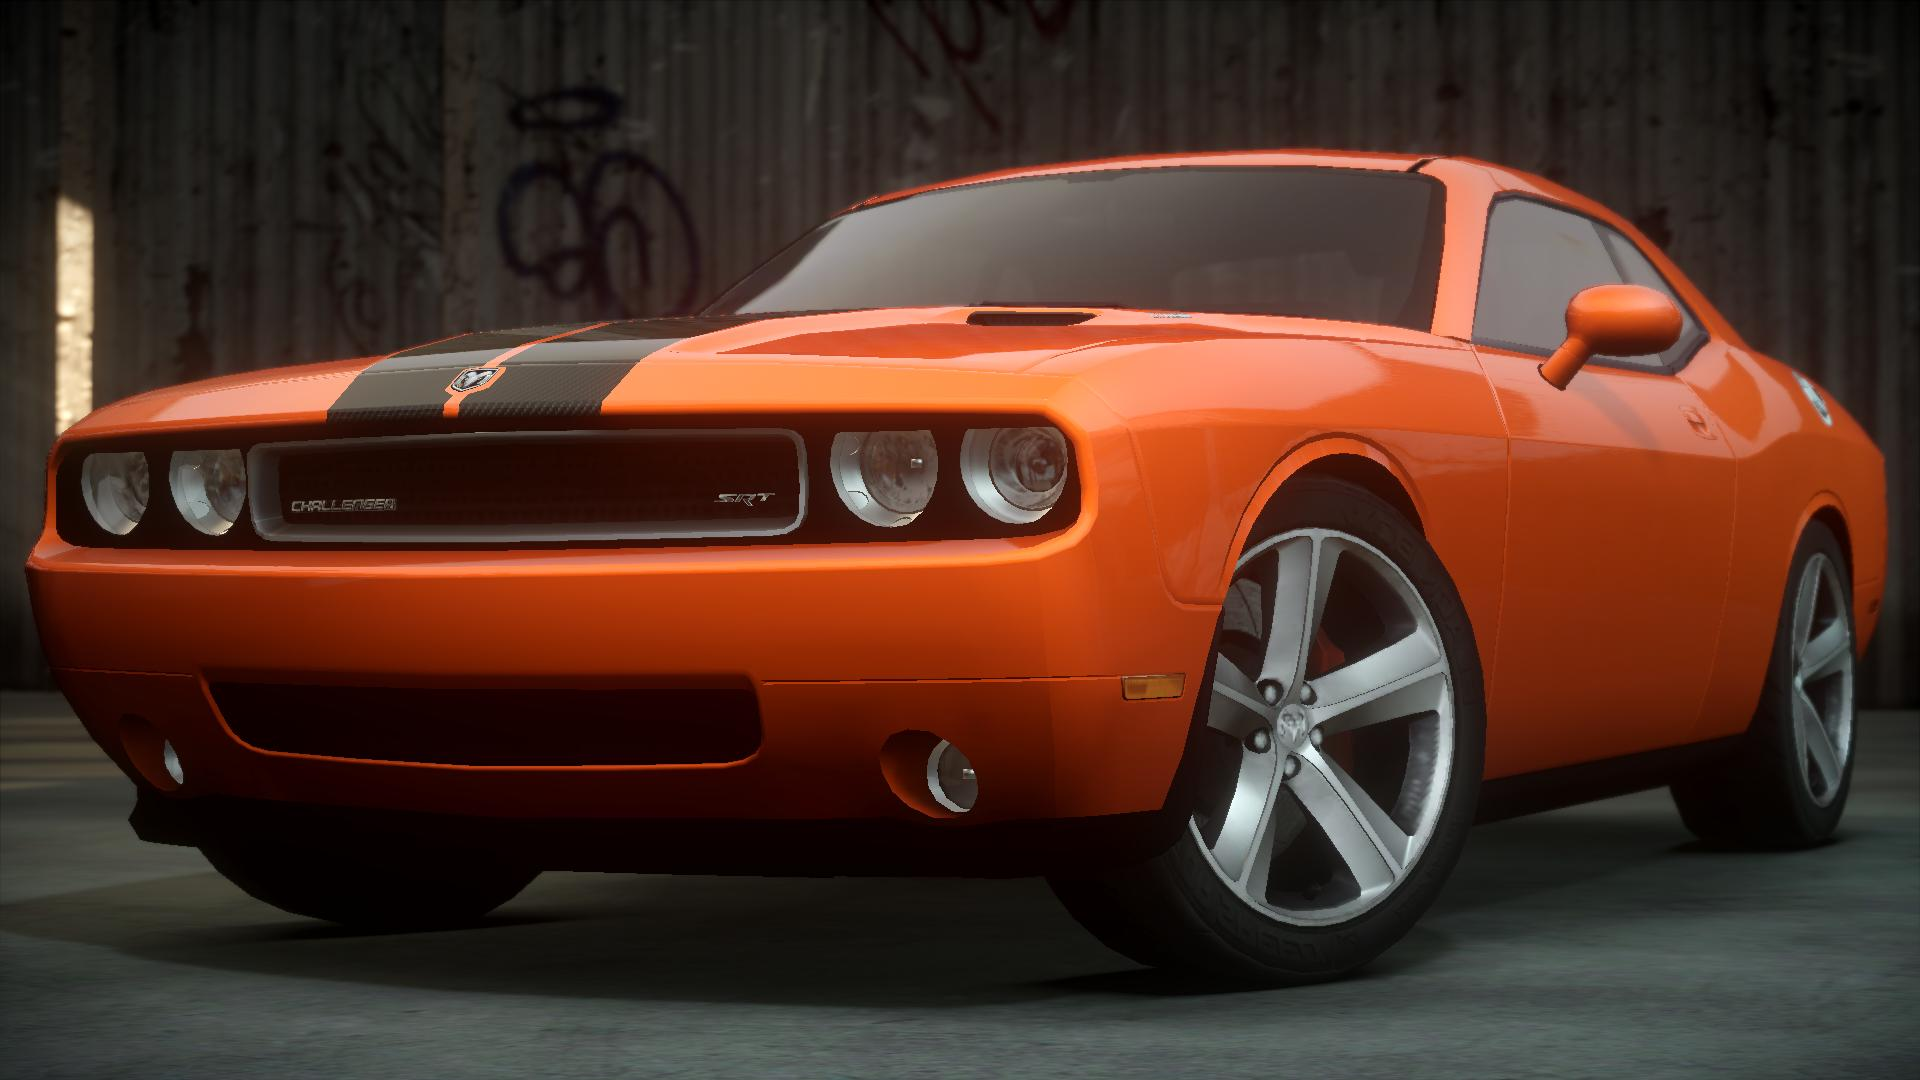 Dodge Challenger SRT8 | Need for Speed Wiki | FANDOM powered by Wikia